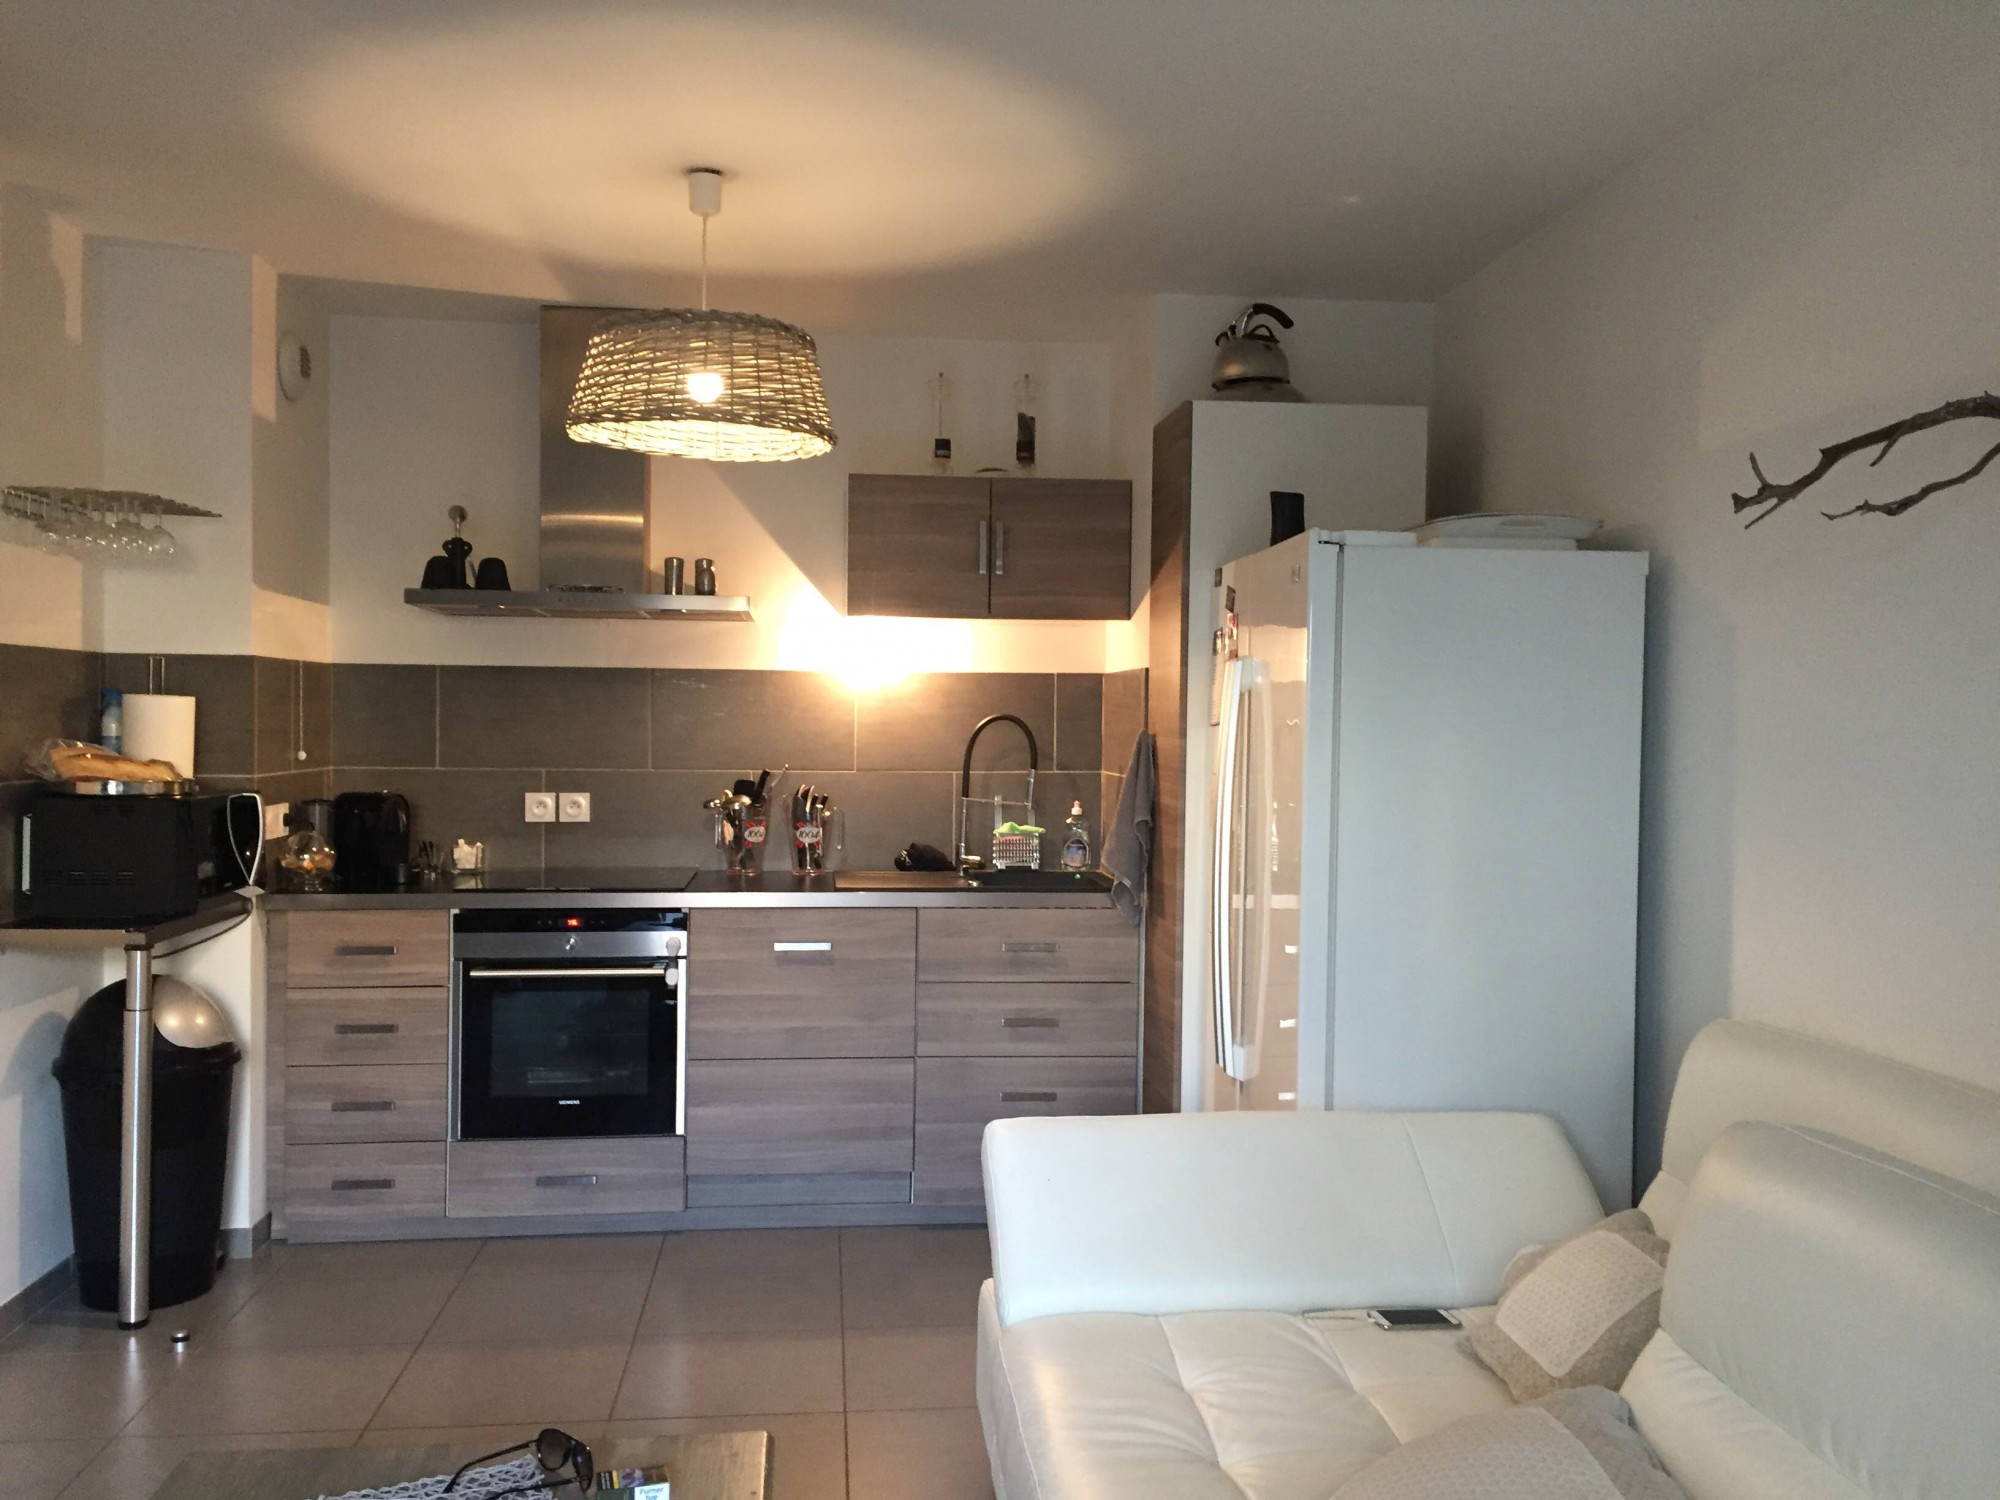 Vend appartement t2 norme bbc d 39 environ 40m avec grand for Location appartement bordeaux pellegrin t2